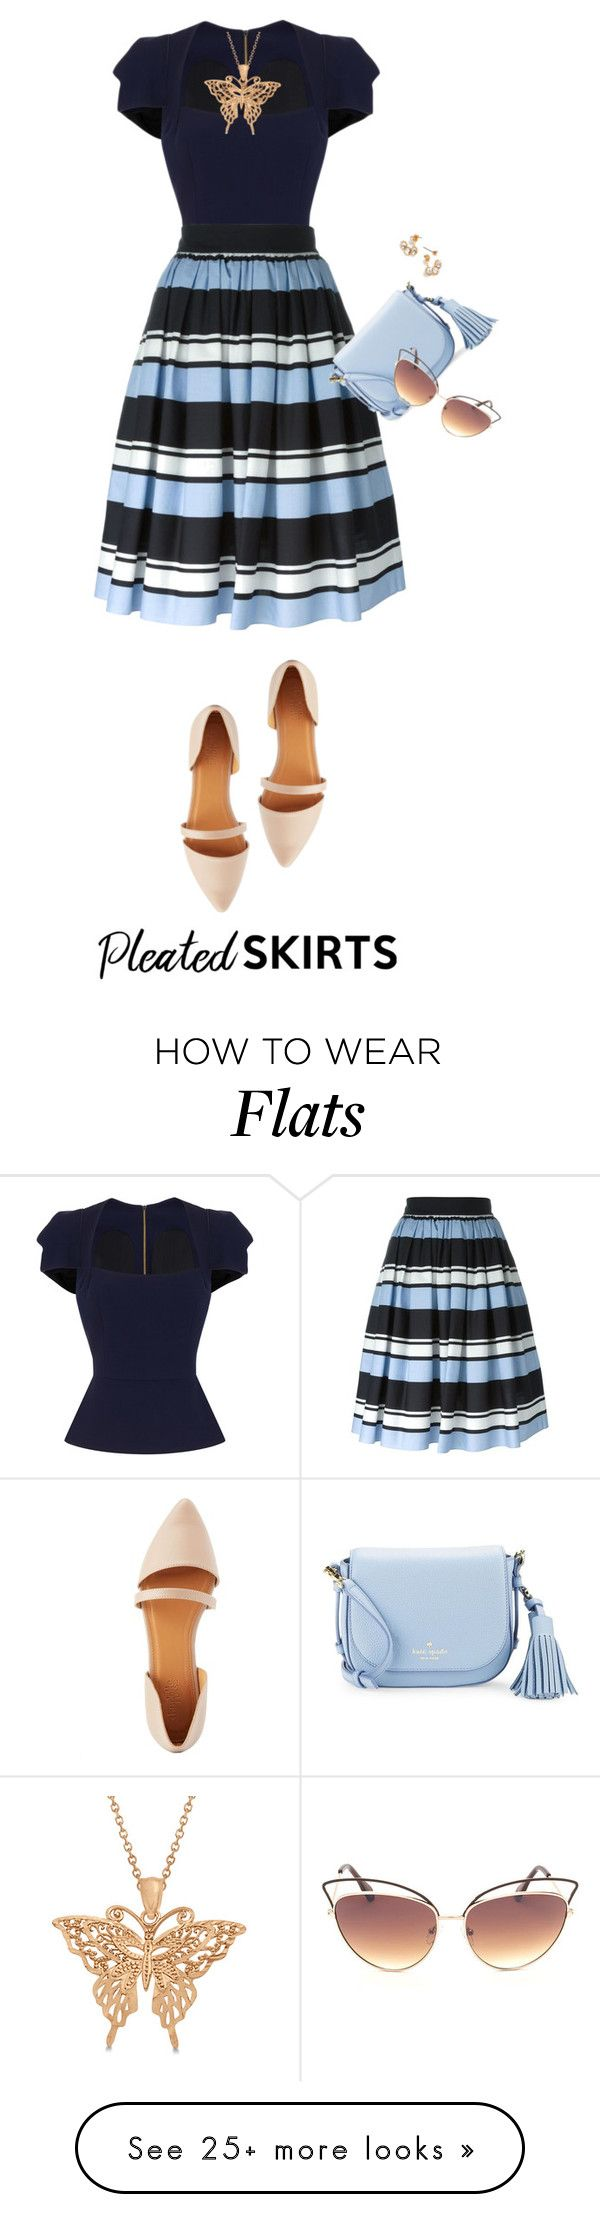 """Senza titolo #4759"" by waikiki24 on Polyvore featuring Roland Mouret, Dolce&Gabbana, Charlotte Russe, Kate Spade, Allurez and pleatedskirts"